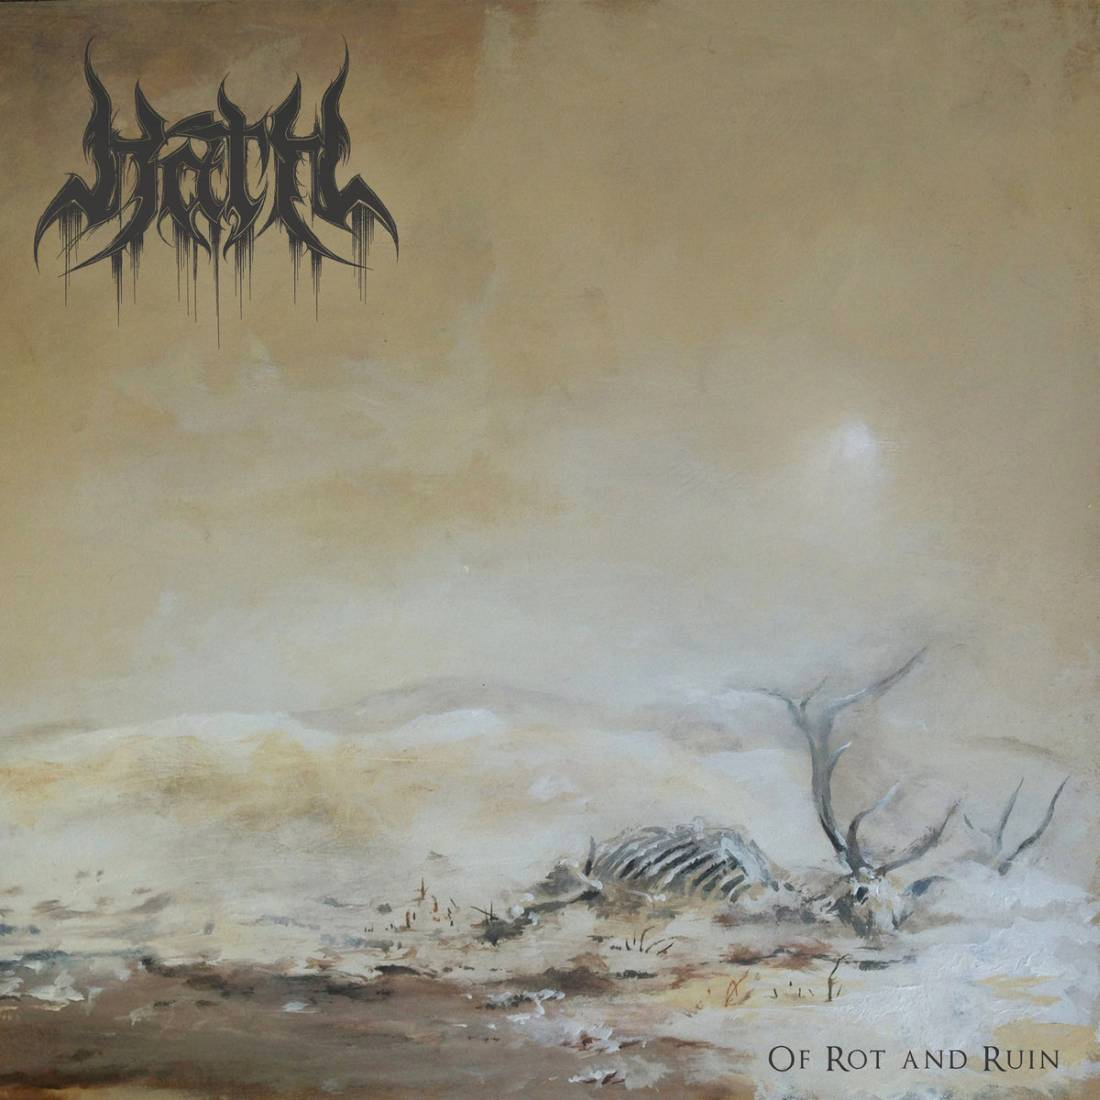 Hath - Of Rot and Ruin